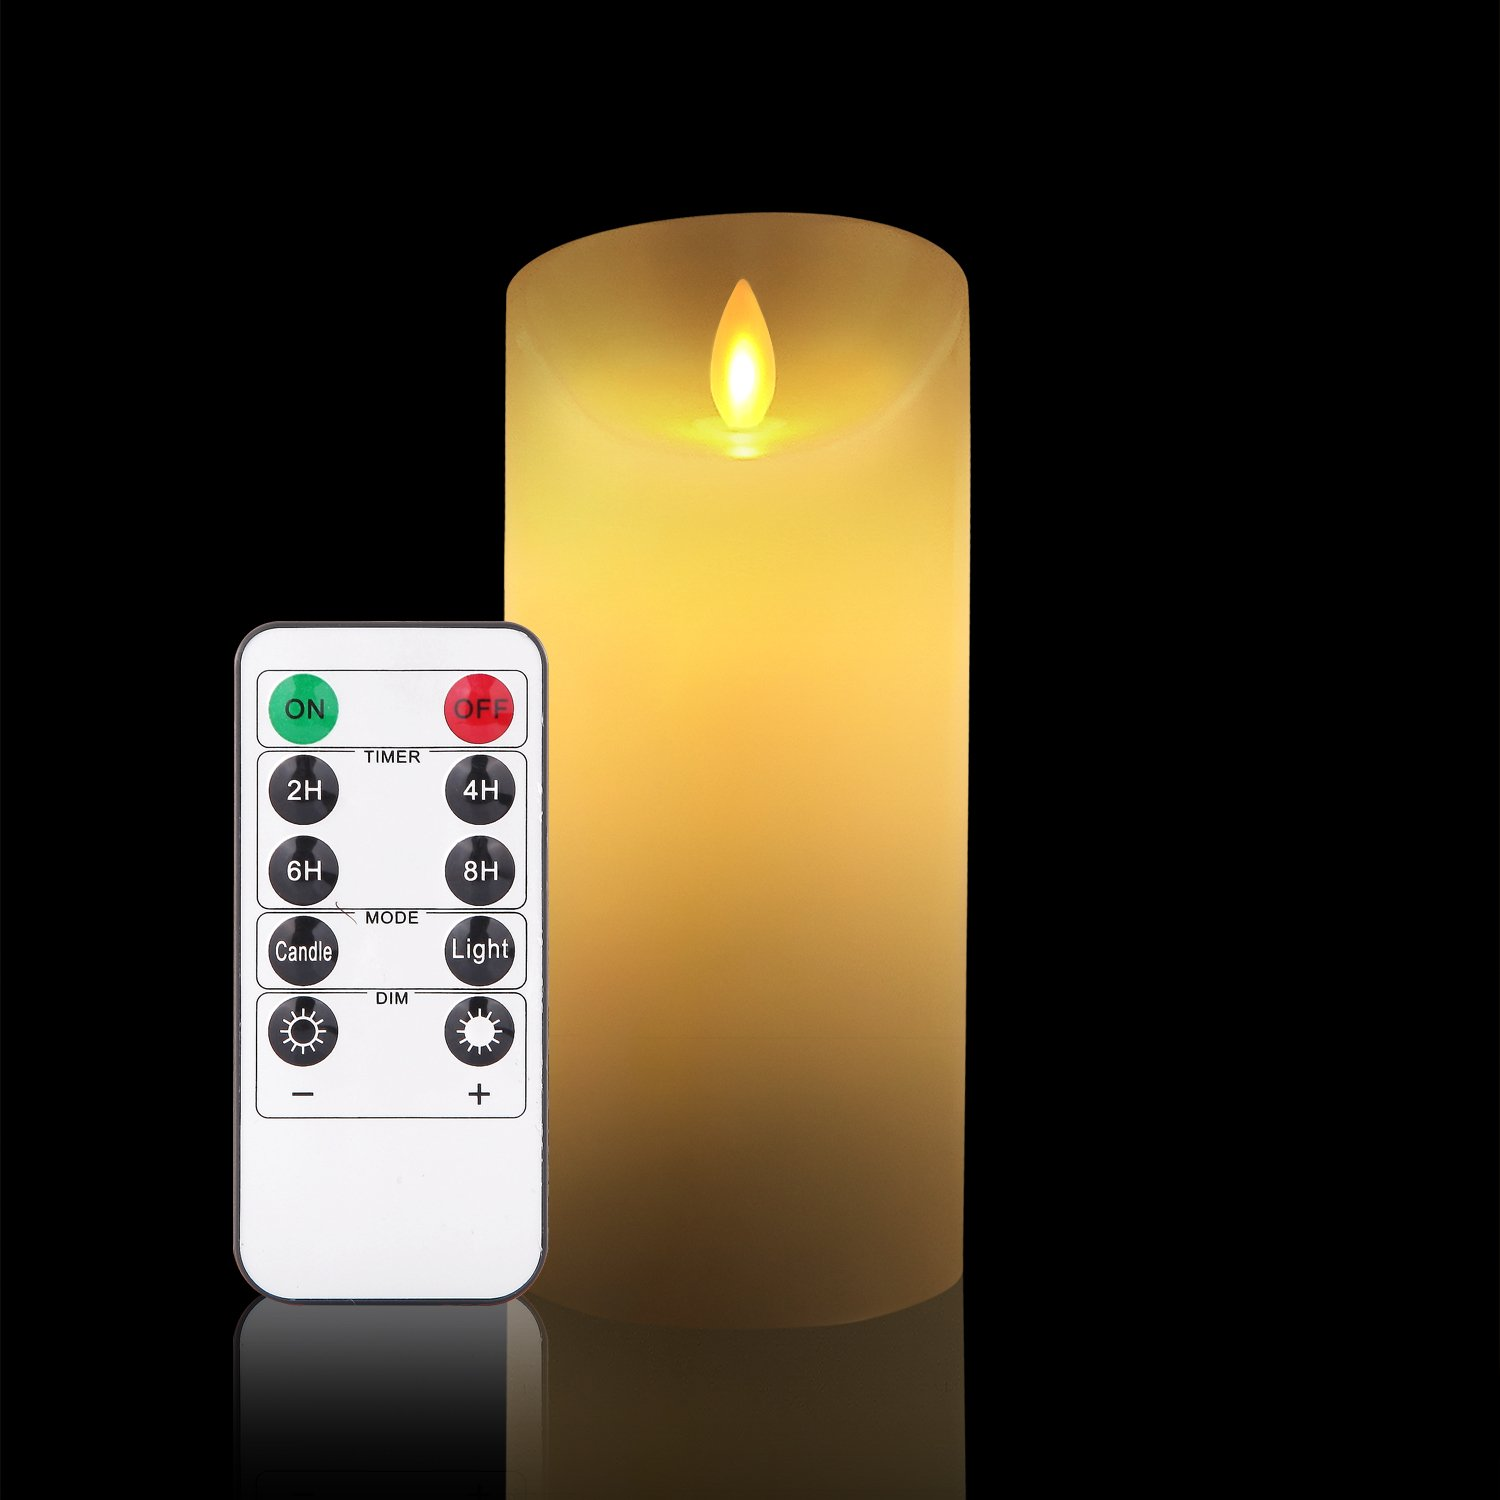 """OShine Flameless Candles,LED Candles 6"""" H(3.15"""" D) Flickering flame with Remote and Timer Real Wax Pillar   Bathroom, Kitchen, Home Decoration   10-Key Control   Reusable,Ivory (11)"""